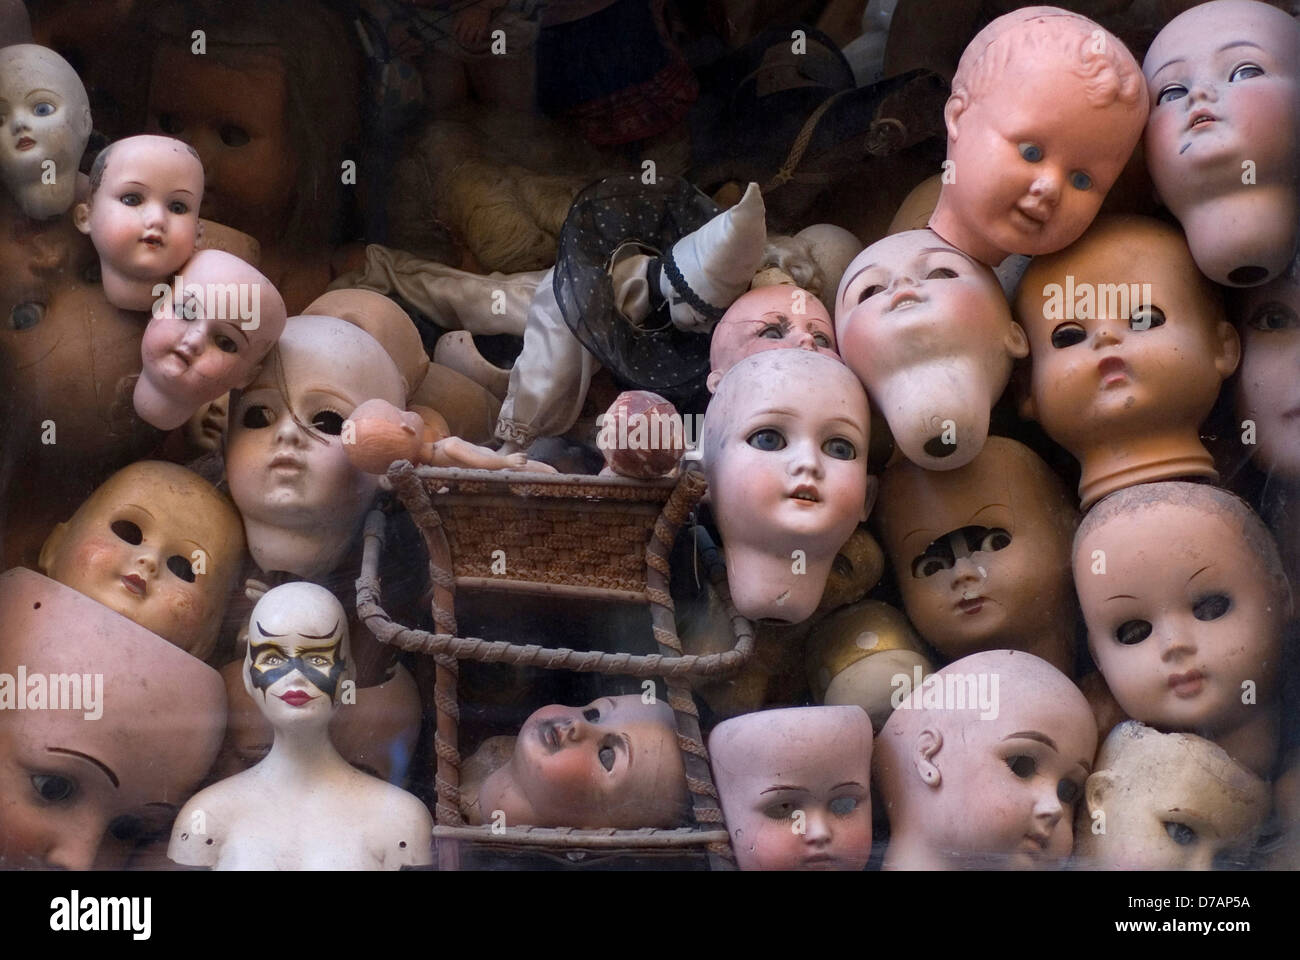 macabre display of old dolls heads Stock Photo